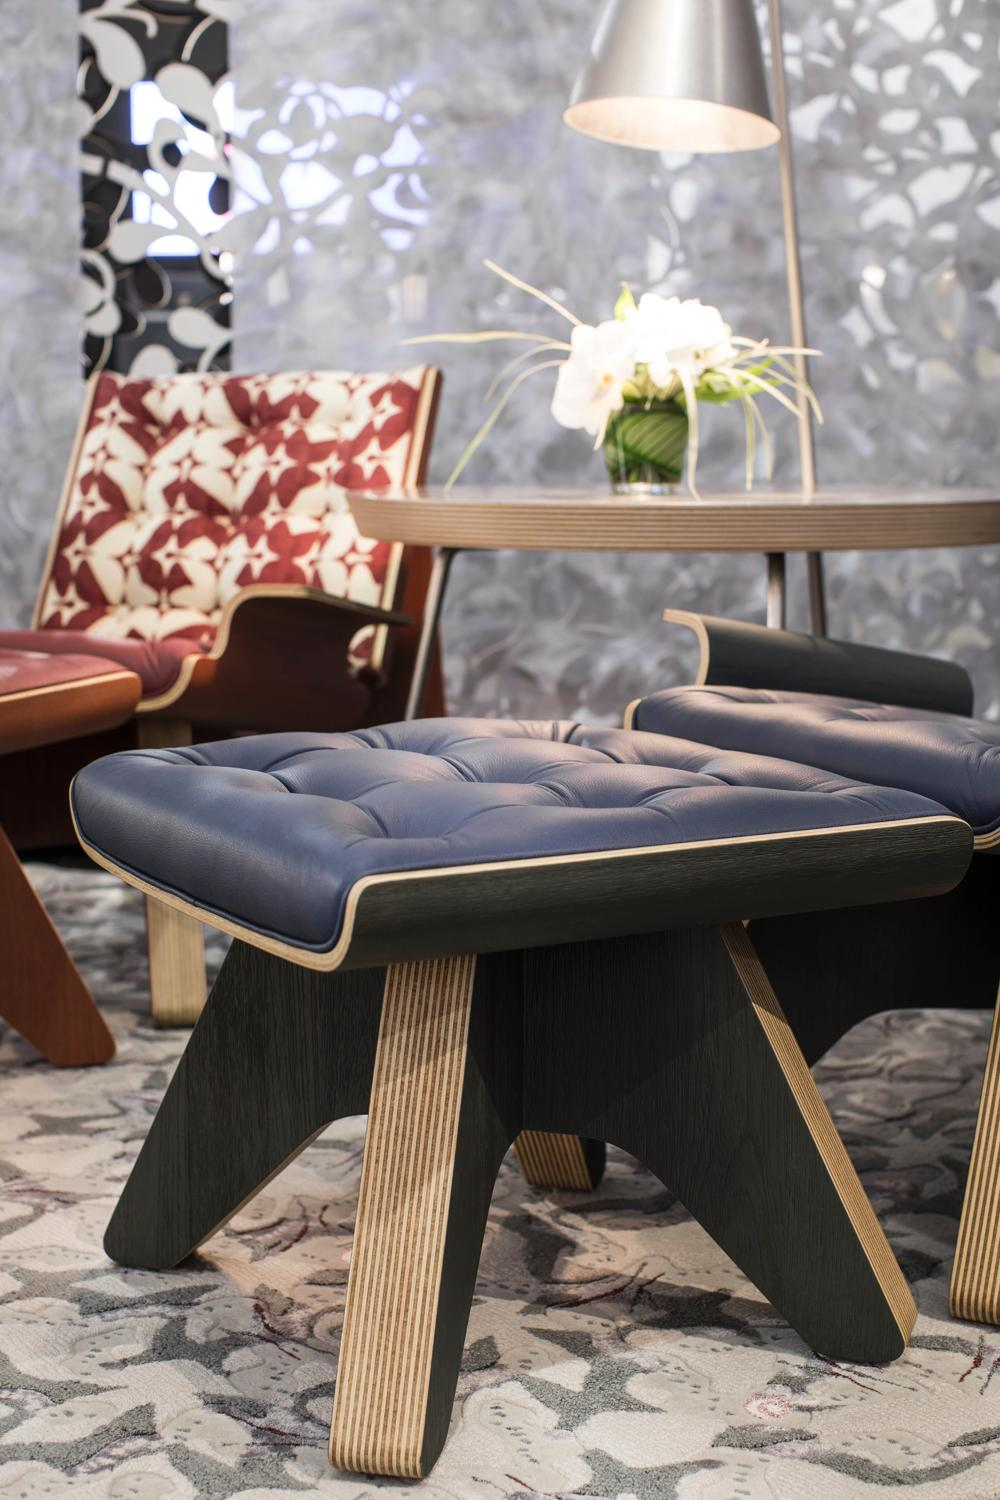 The Bintan collection was named for the Indonesian island and features handprinted upholstery / Marek Swoboda